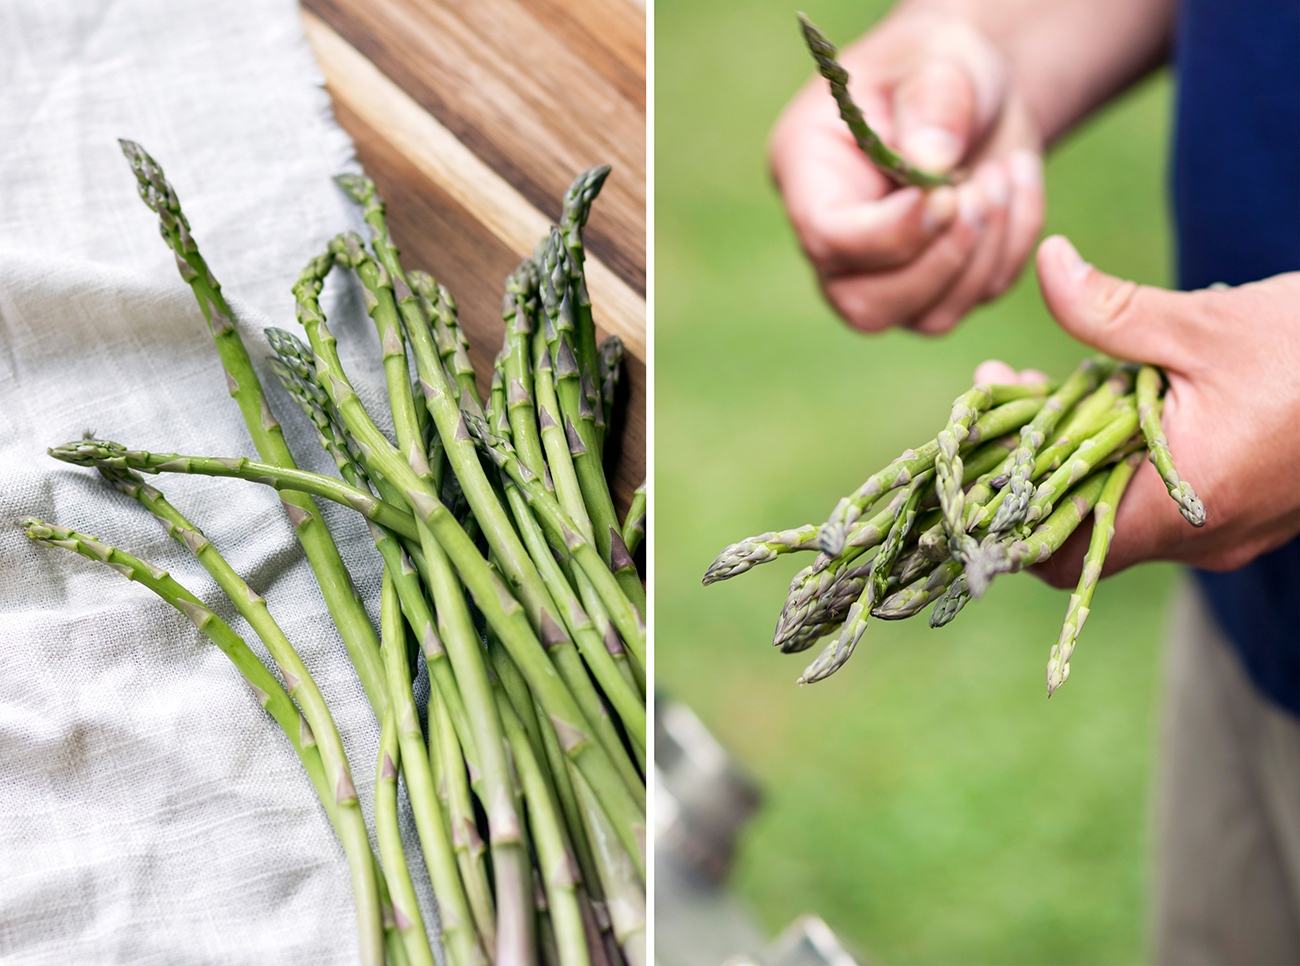 <p>Asparagus is one of the spring vegetables grown on the farm for the CSA shares. / Image: Allison McAdams // Published: 5.15.20  </p>